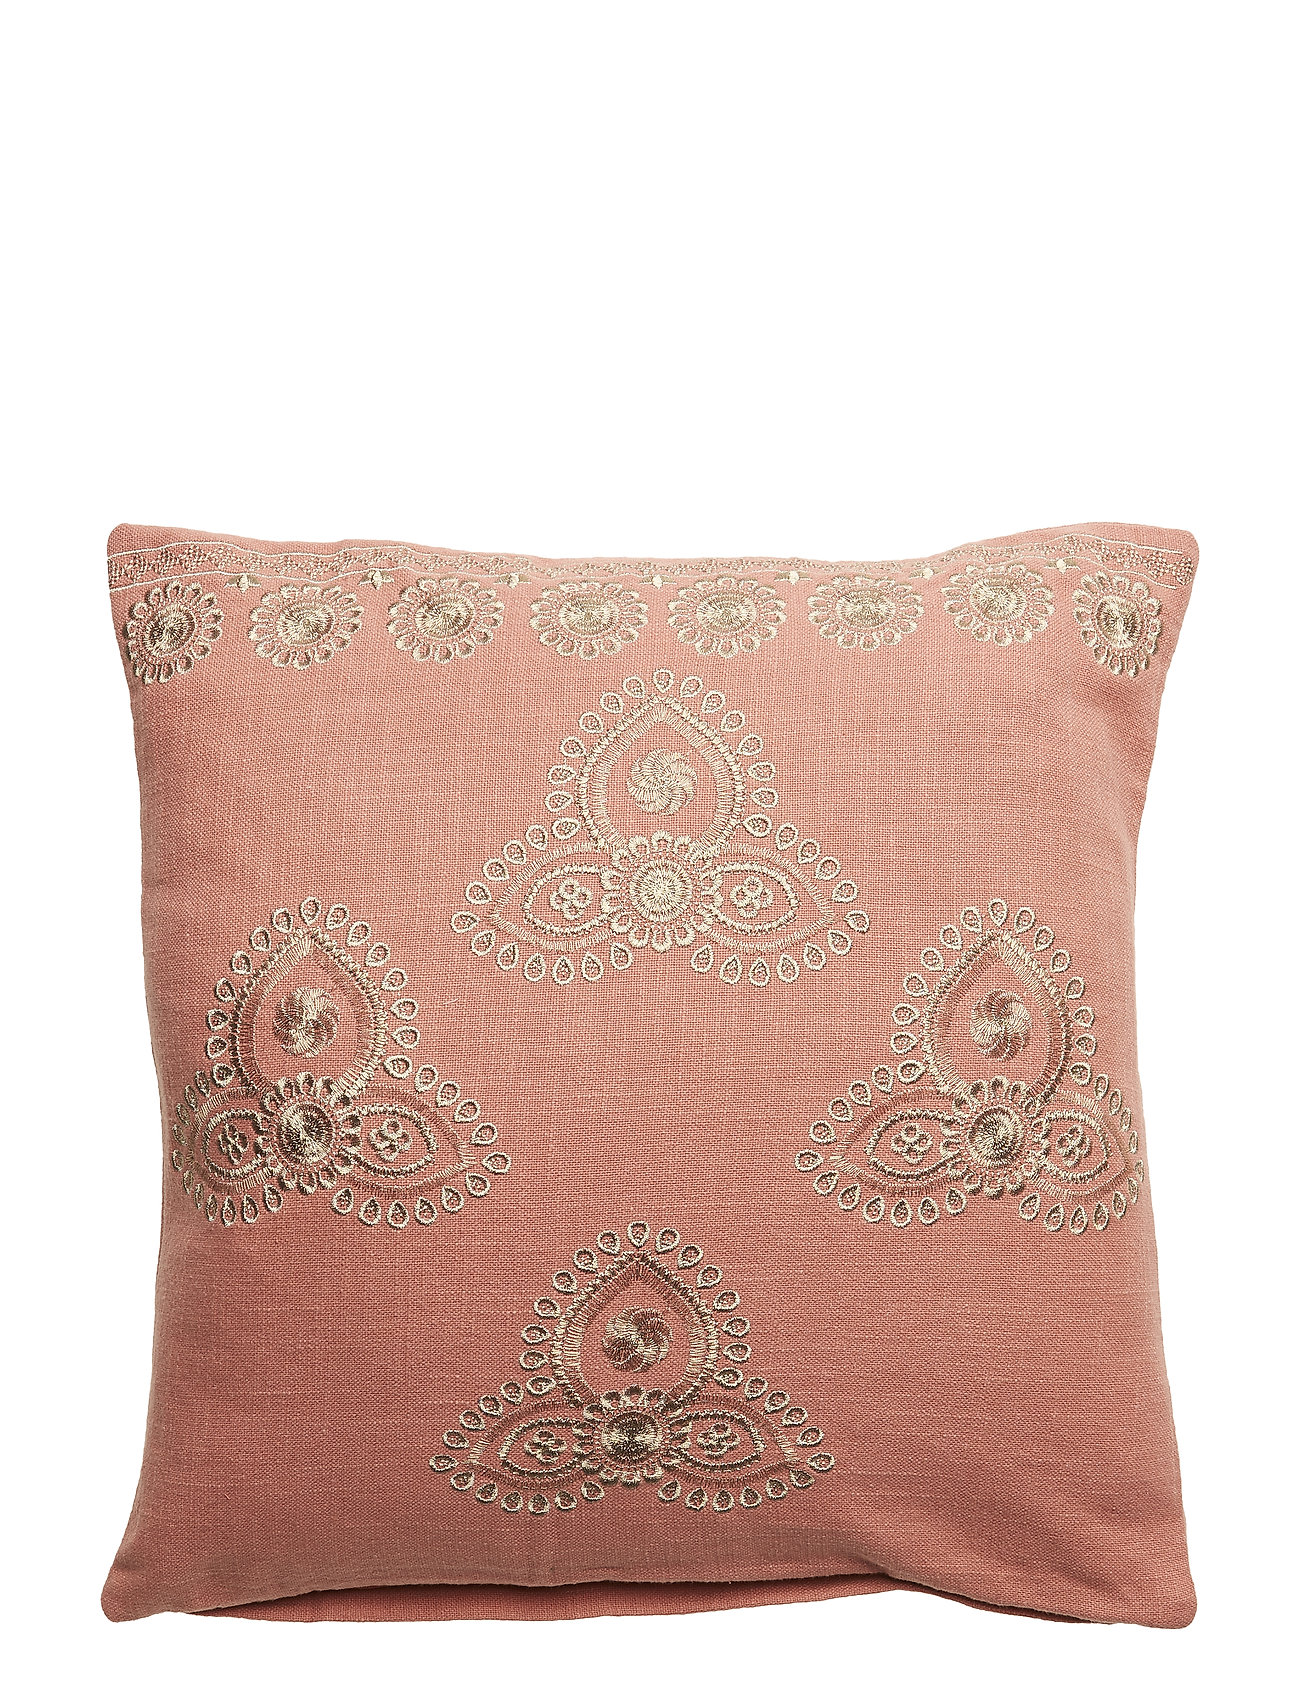 DAY Home Day Nalle Cushion Cover - KISS